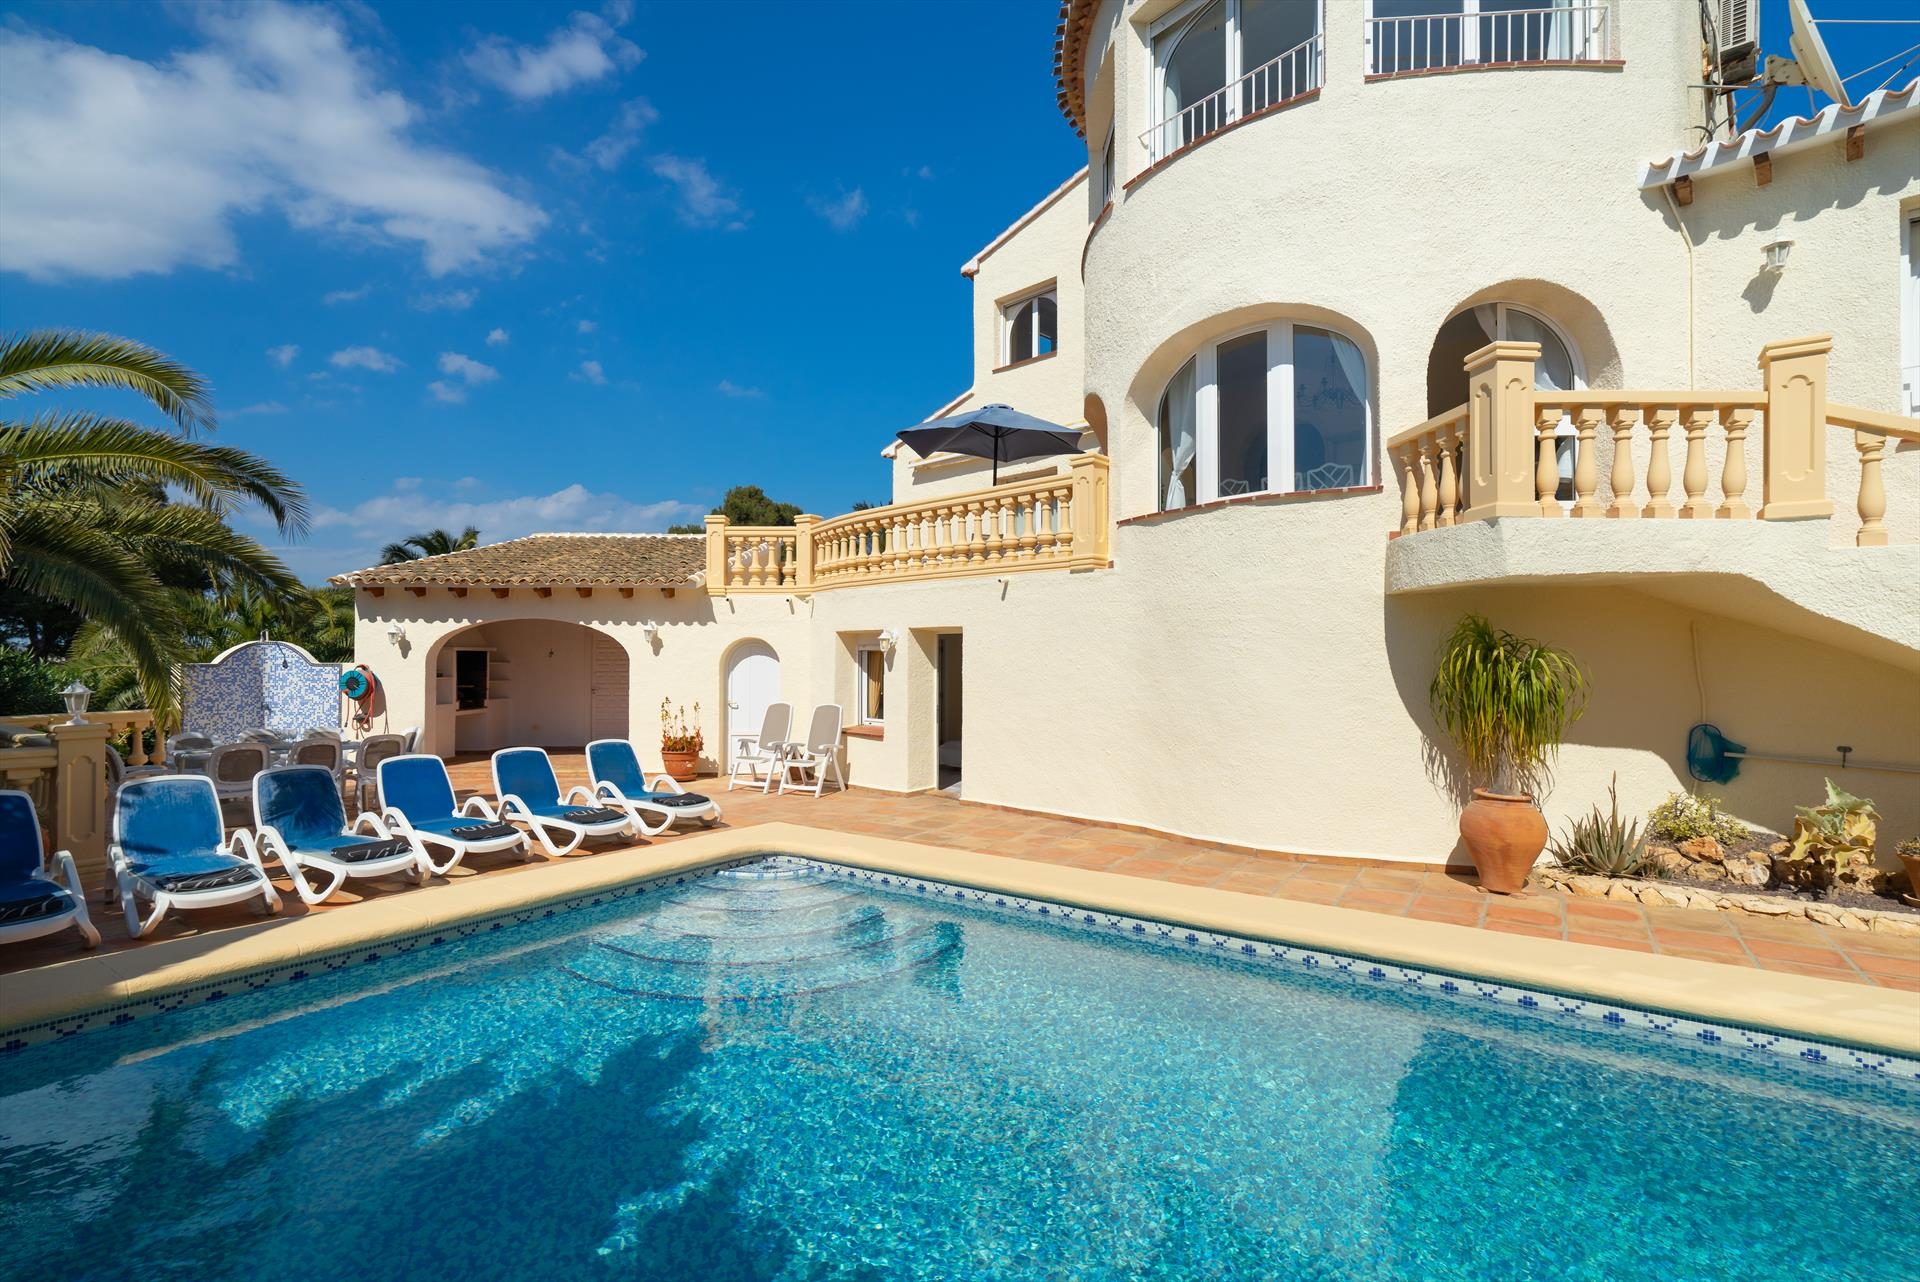 Villa Hermosa 6 pax, Classic and comfortable villa in Javea, on the Costa Blanca, Spain  with private pool for 6 persons...